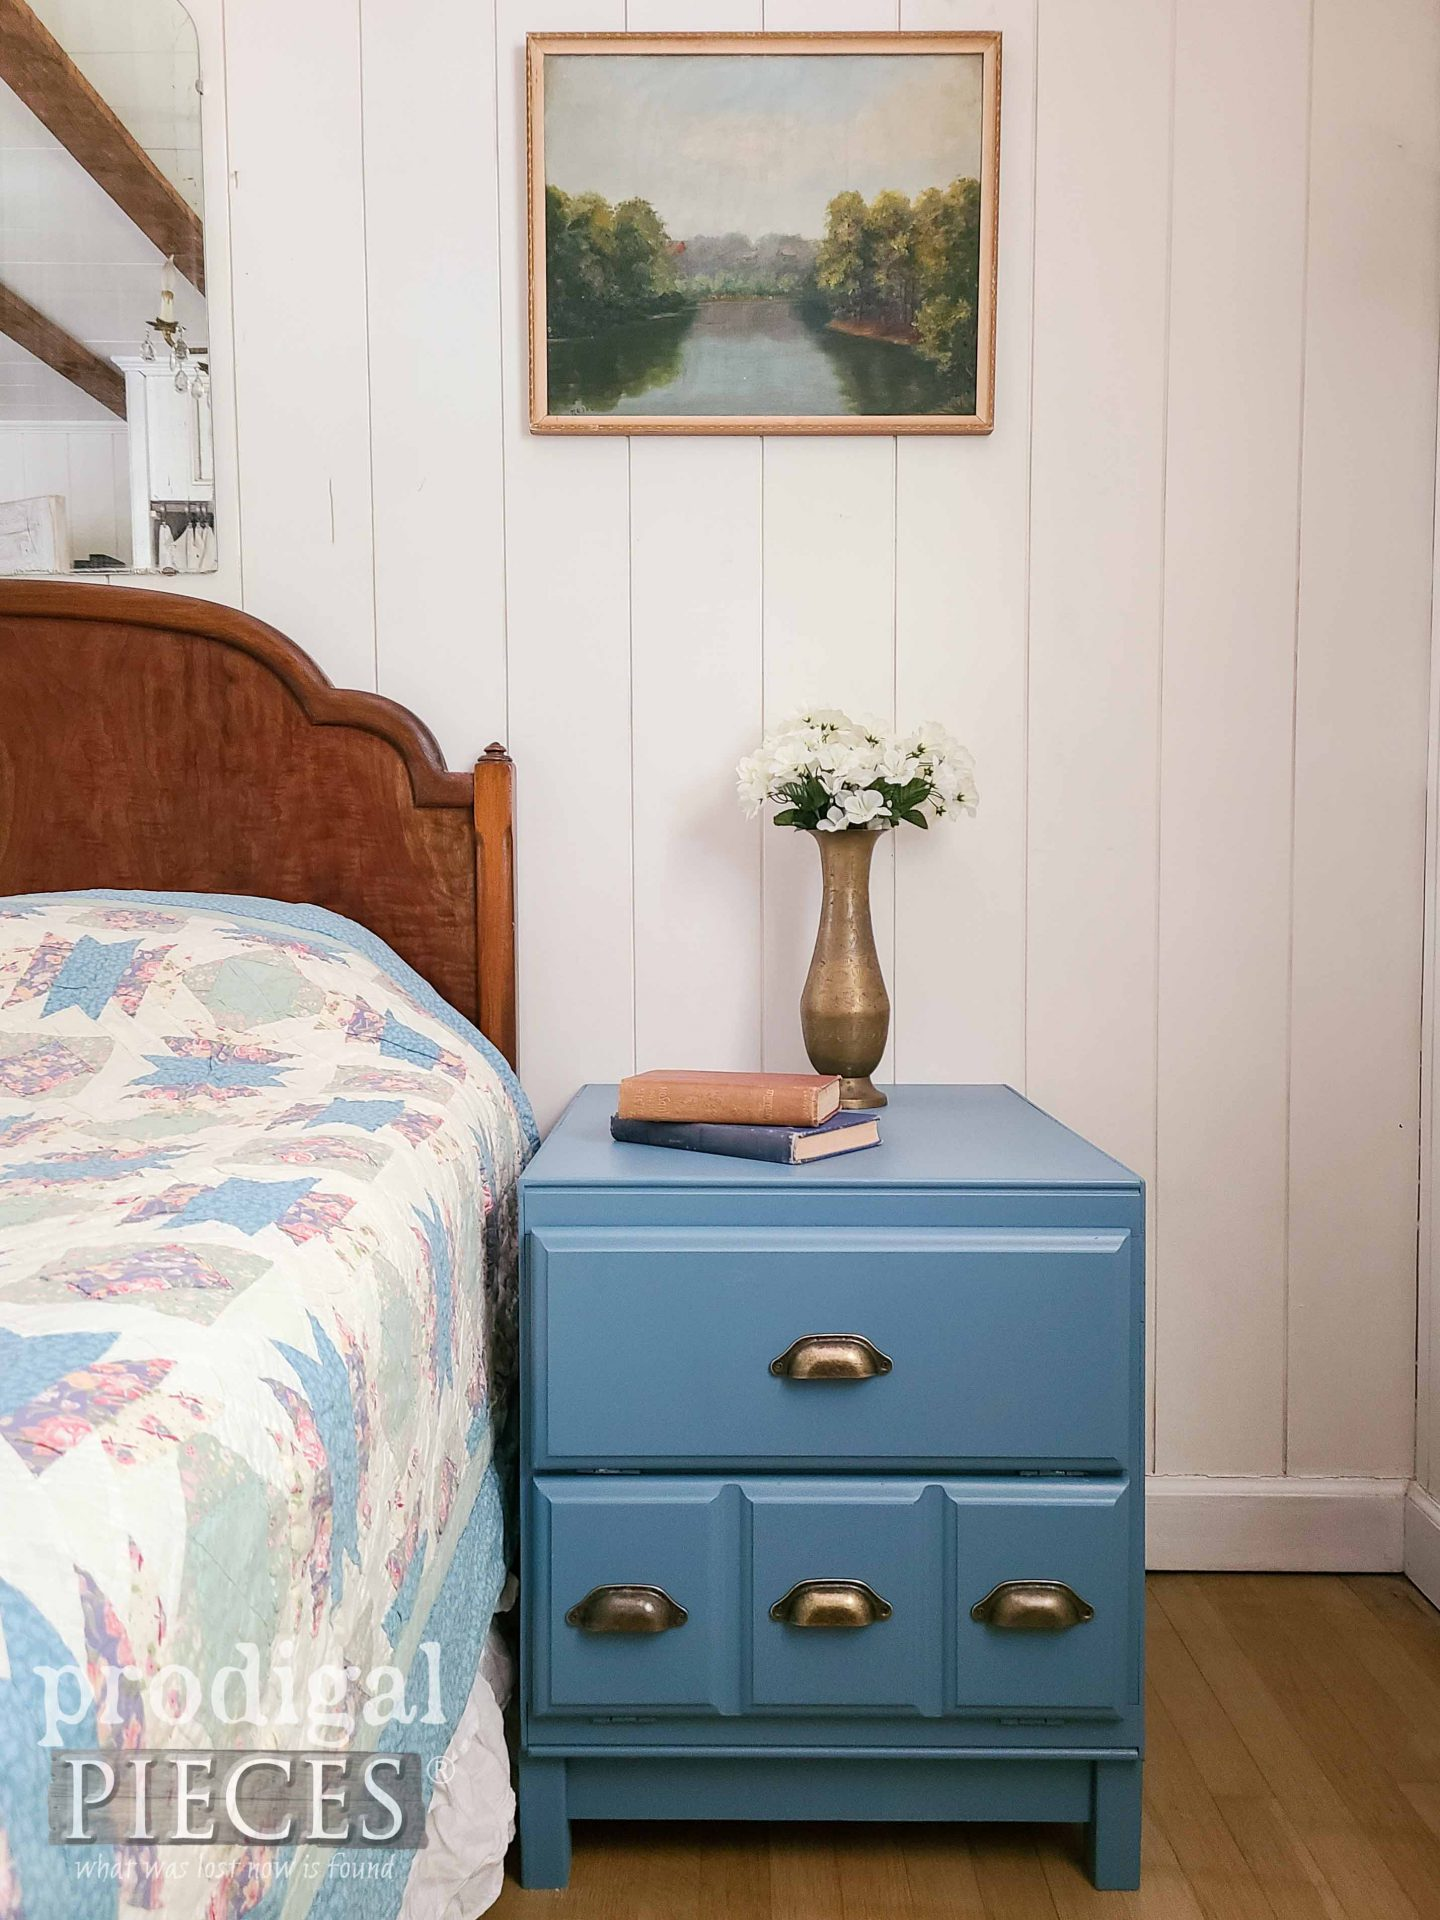 DIY Cabinet Side Table In Blue with Brass Bin Pulls by Larissa of Prodigal Pieces   prodigalpieces.com #prodigalpieces #diy #furniture #home #homedecor